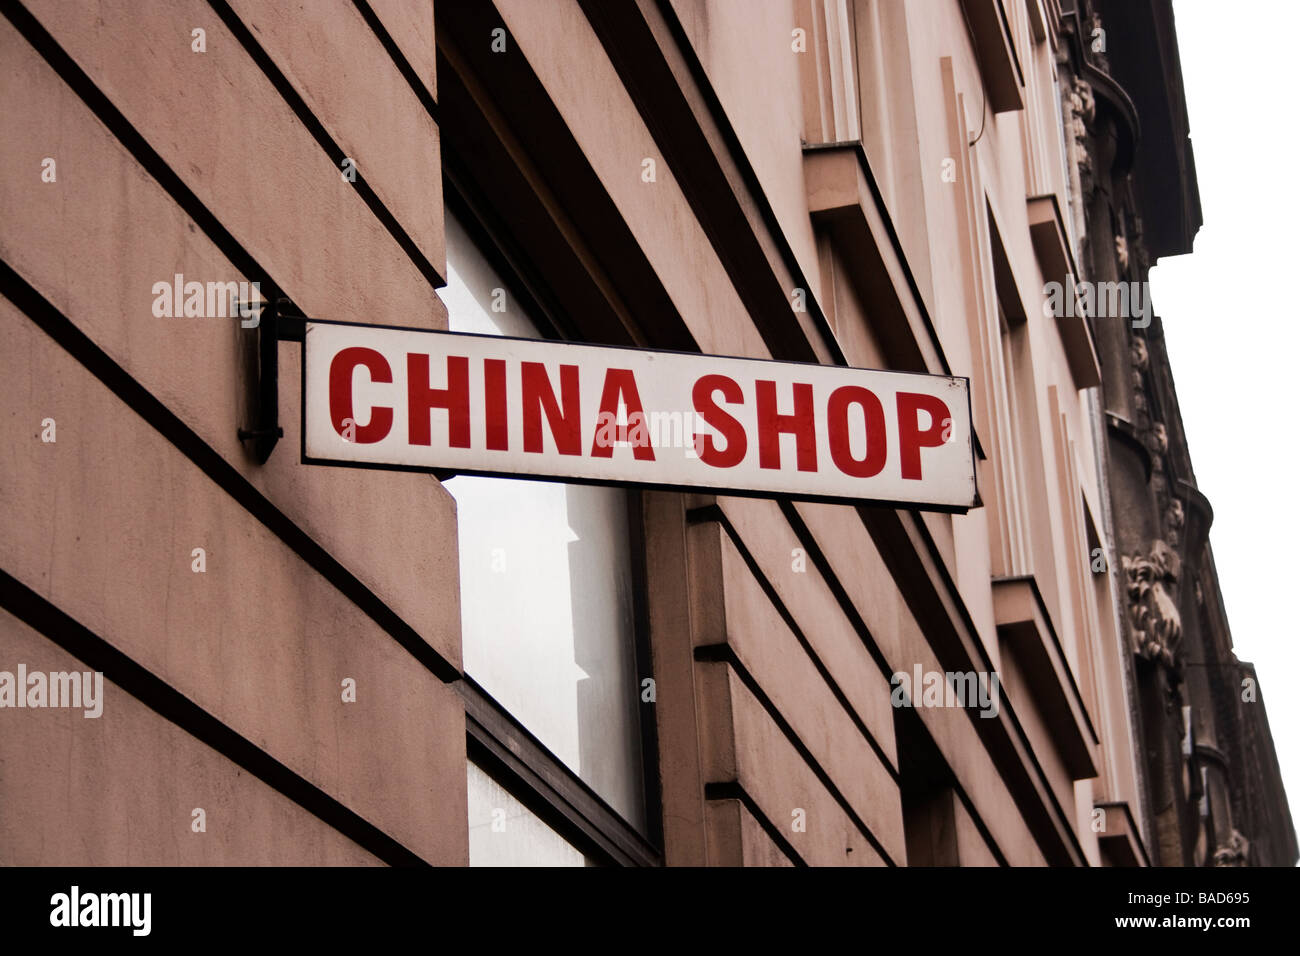 China shop sign - Stock Image